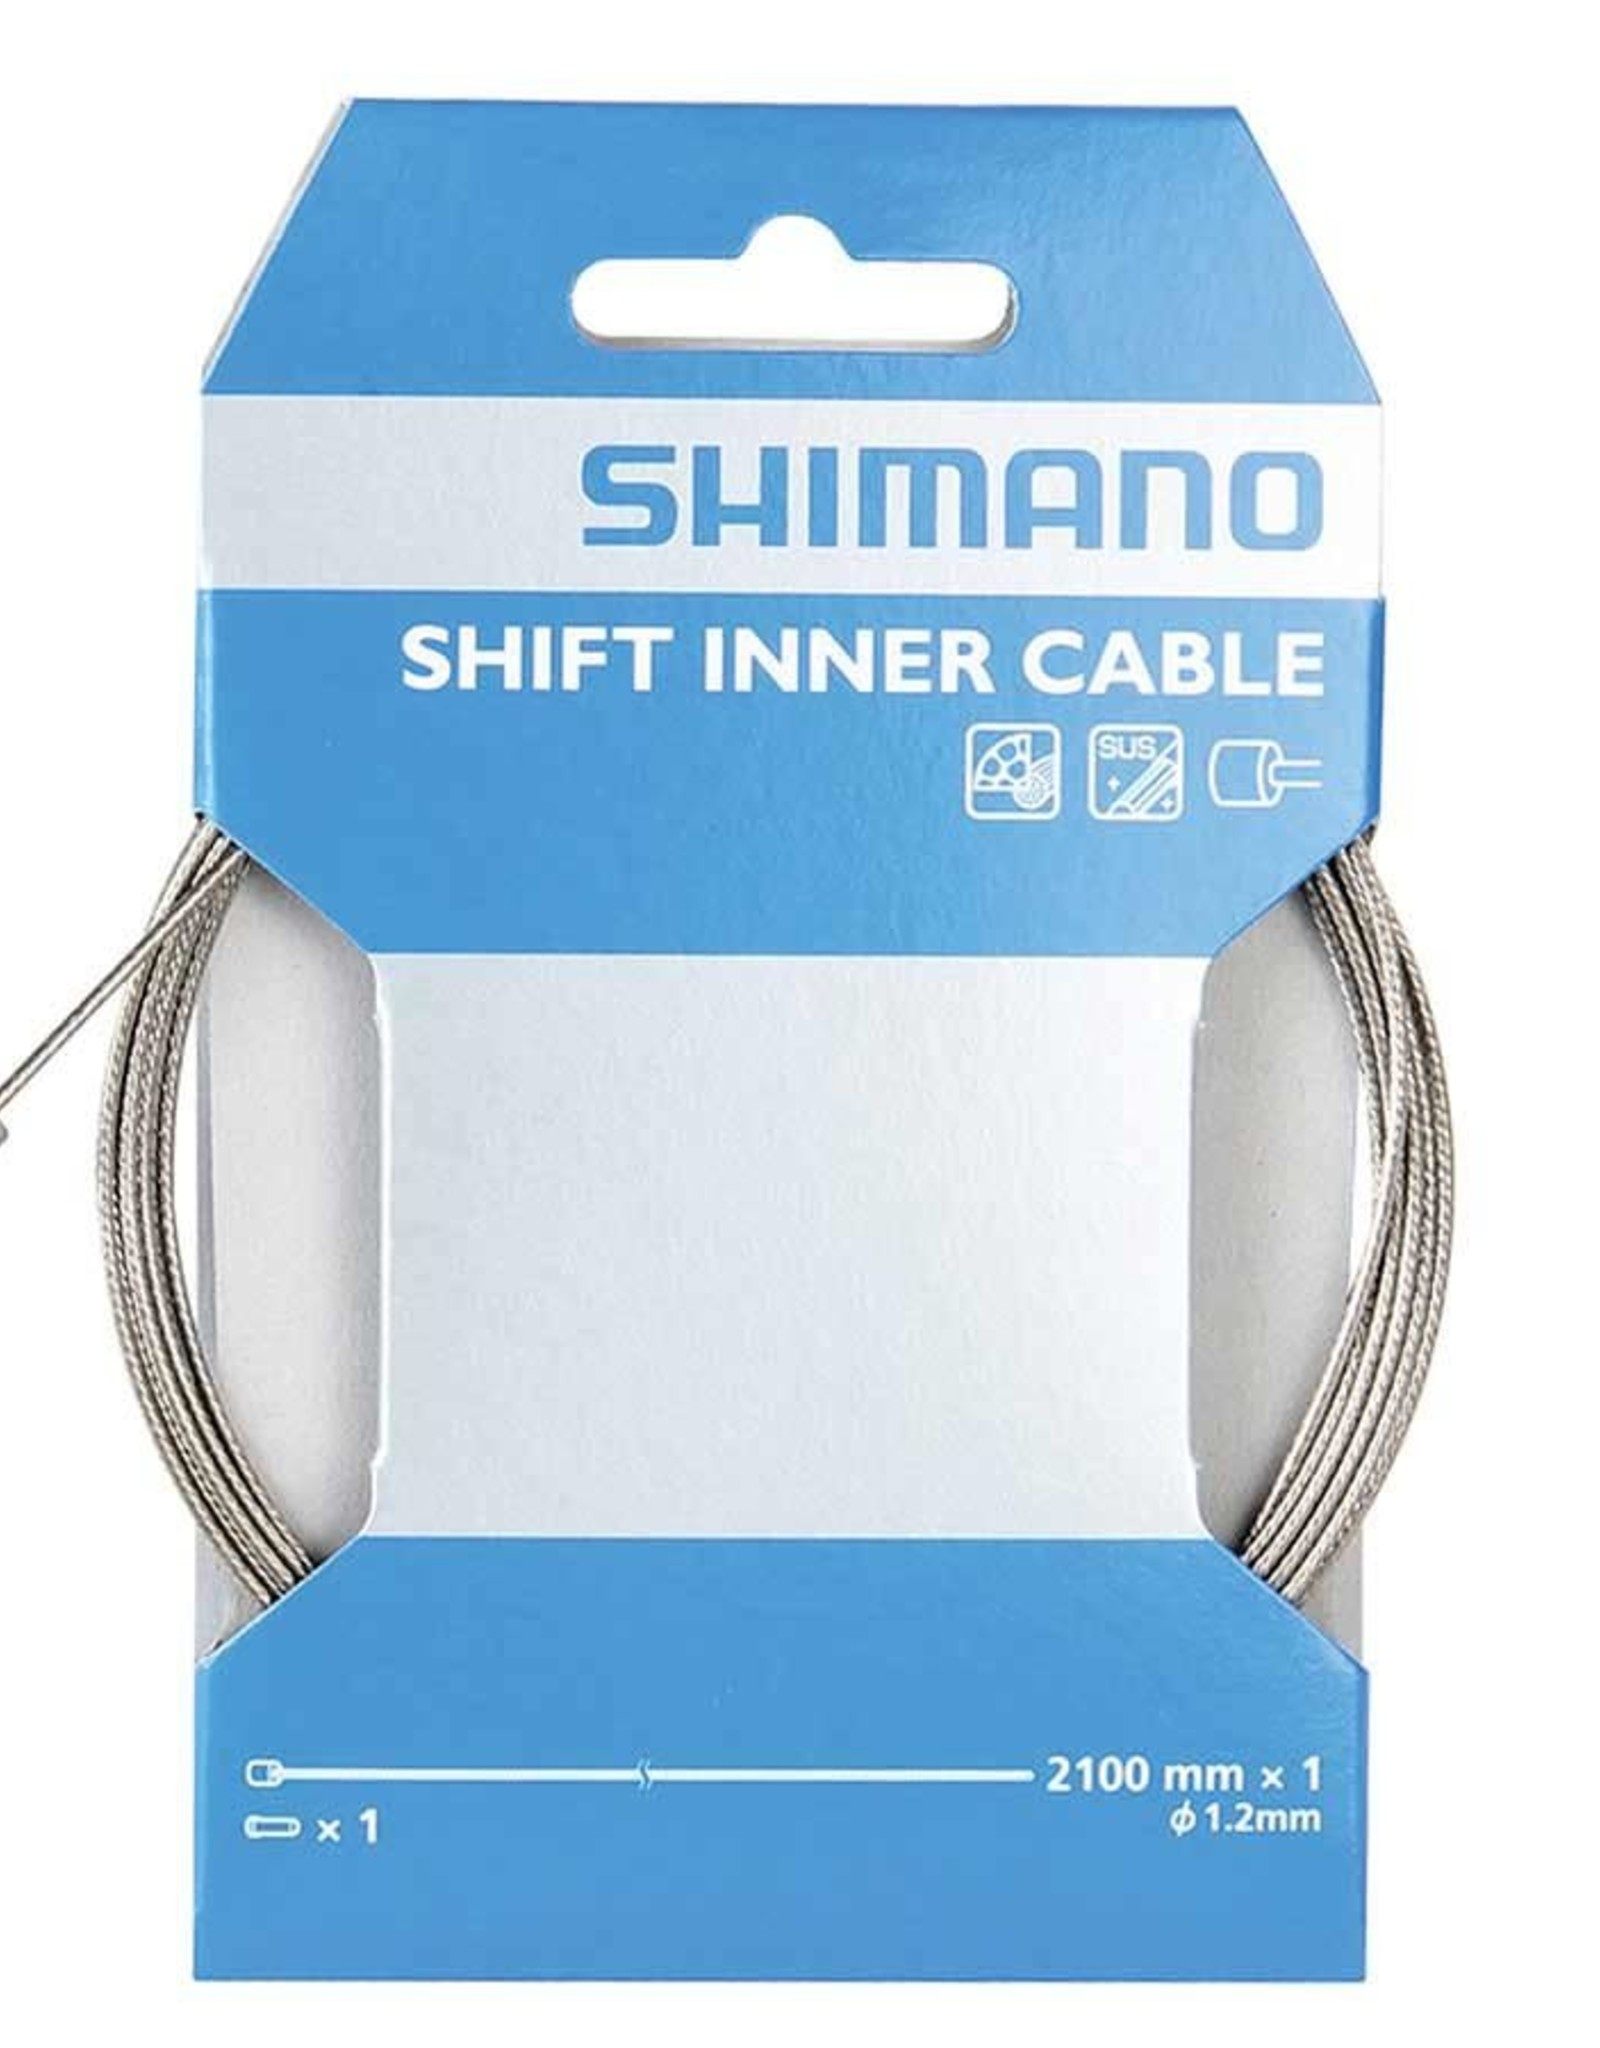 Shimano Shiman, Shift cable, Stainless, 1.2x2100mm, Unit